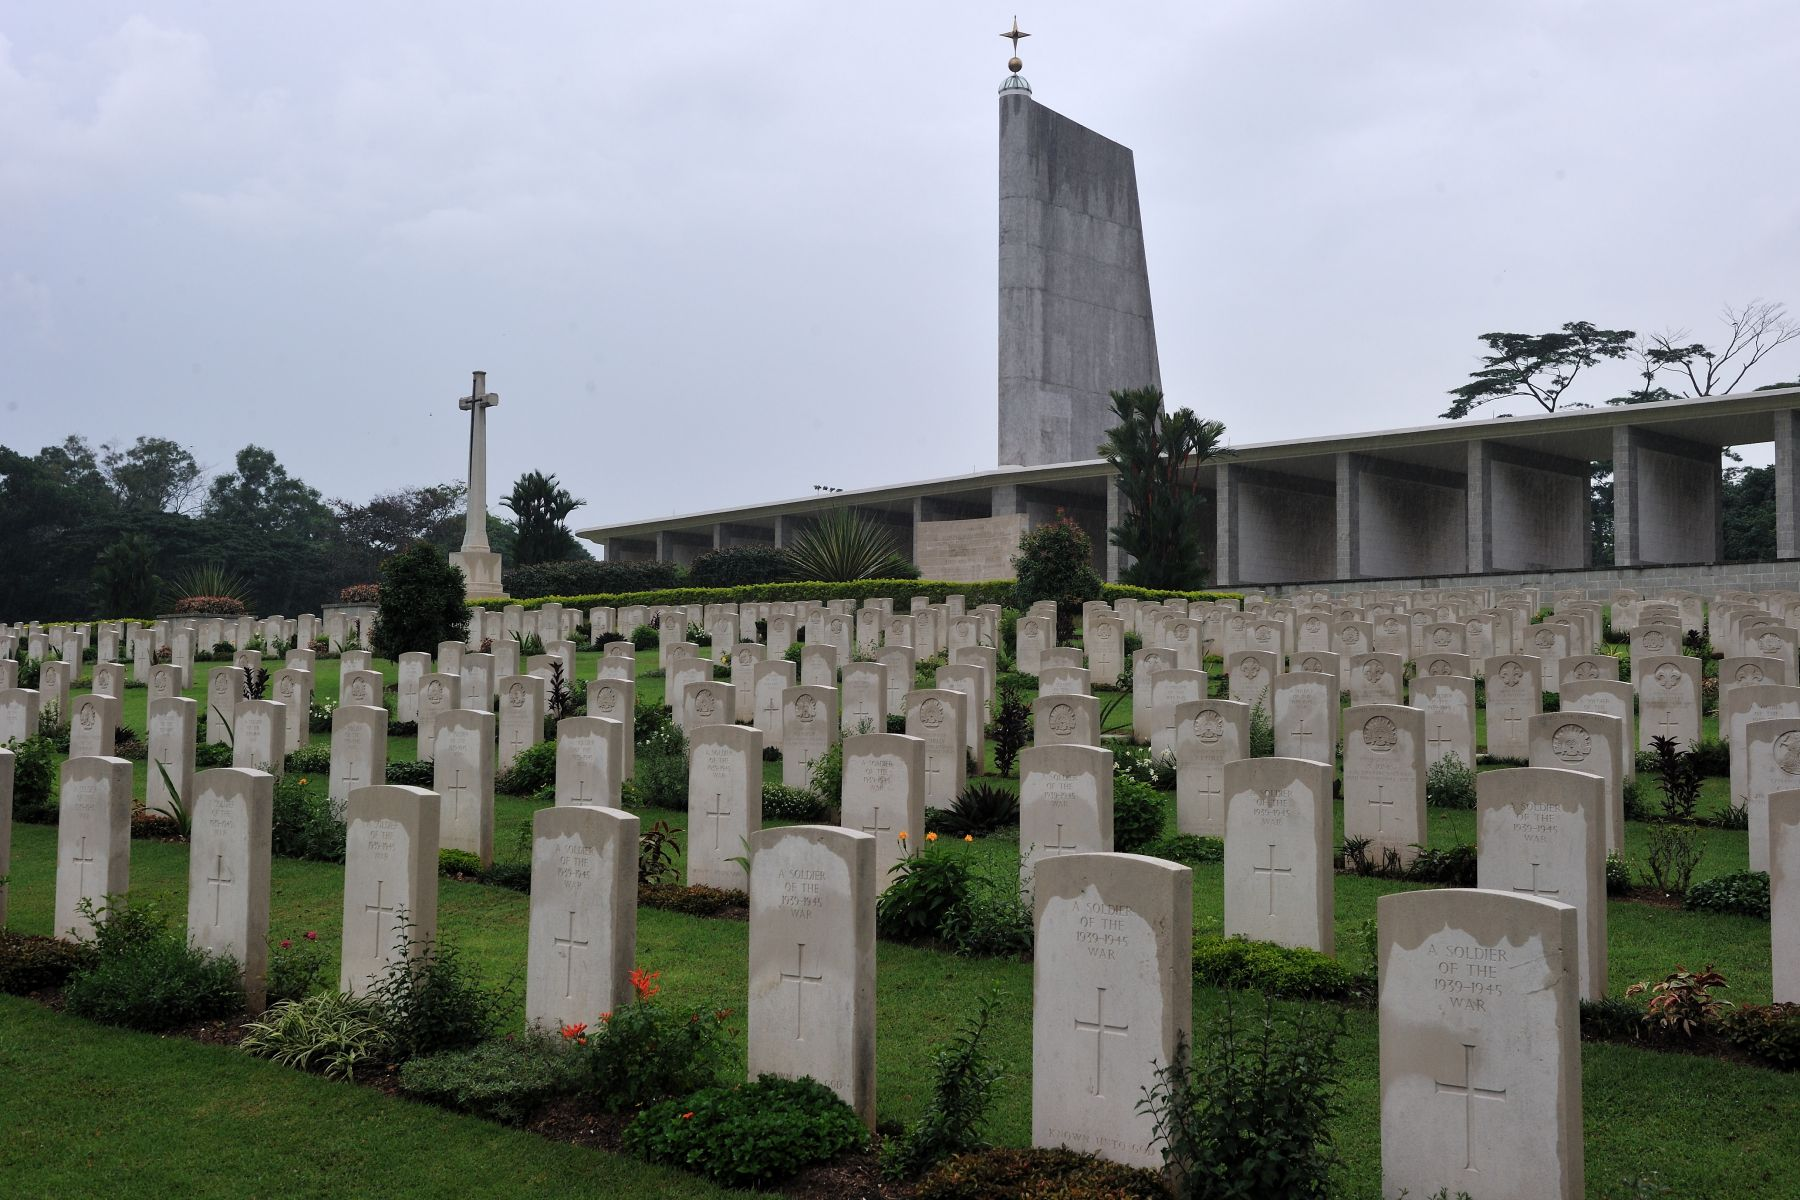 The Governor General visited the Kranji War Cemetery where he laid a wreath and viewed the Memorial Wall in honour of the hundreds of Canadian soldiers who were killed in Southeast Asia during the Second World War. The Memorial stands in Kranji War Cemetery, 22.5 kilometres north of the city of Singapore, overlooking the Straits of Johore. The Singapore Memorial bears on its side columns the names of 191 Canadian airmen who have no known grave. With these are the names of 24,327 comrades from all over the Commonwealth. These airmen died during operations over the whole of southern and eastern Asia and the surrounding seas and oceans.